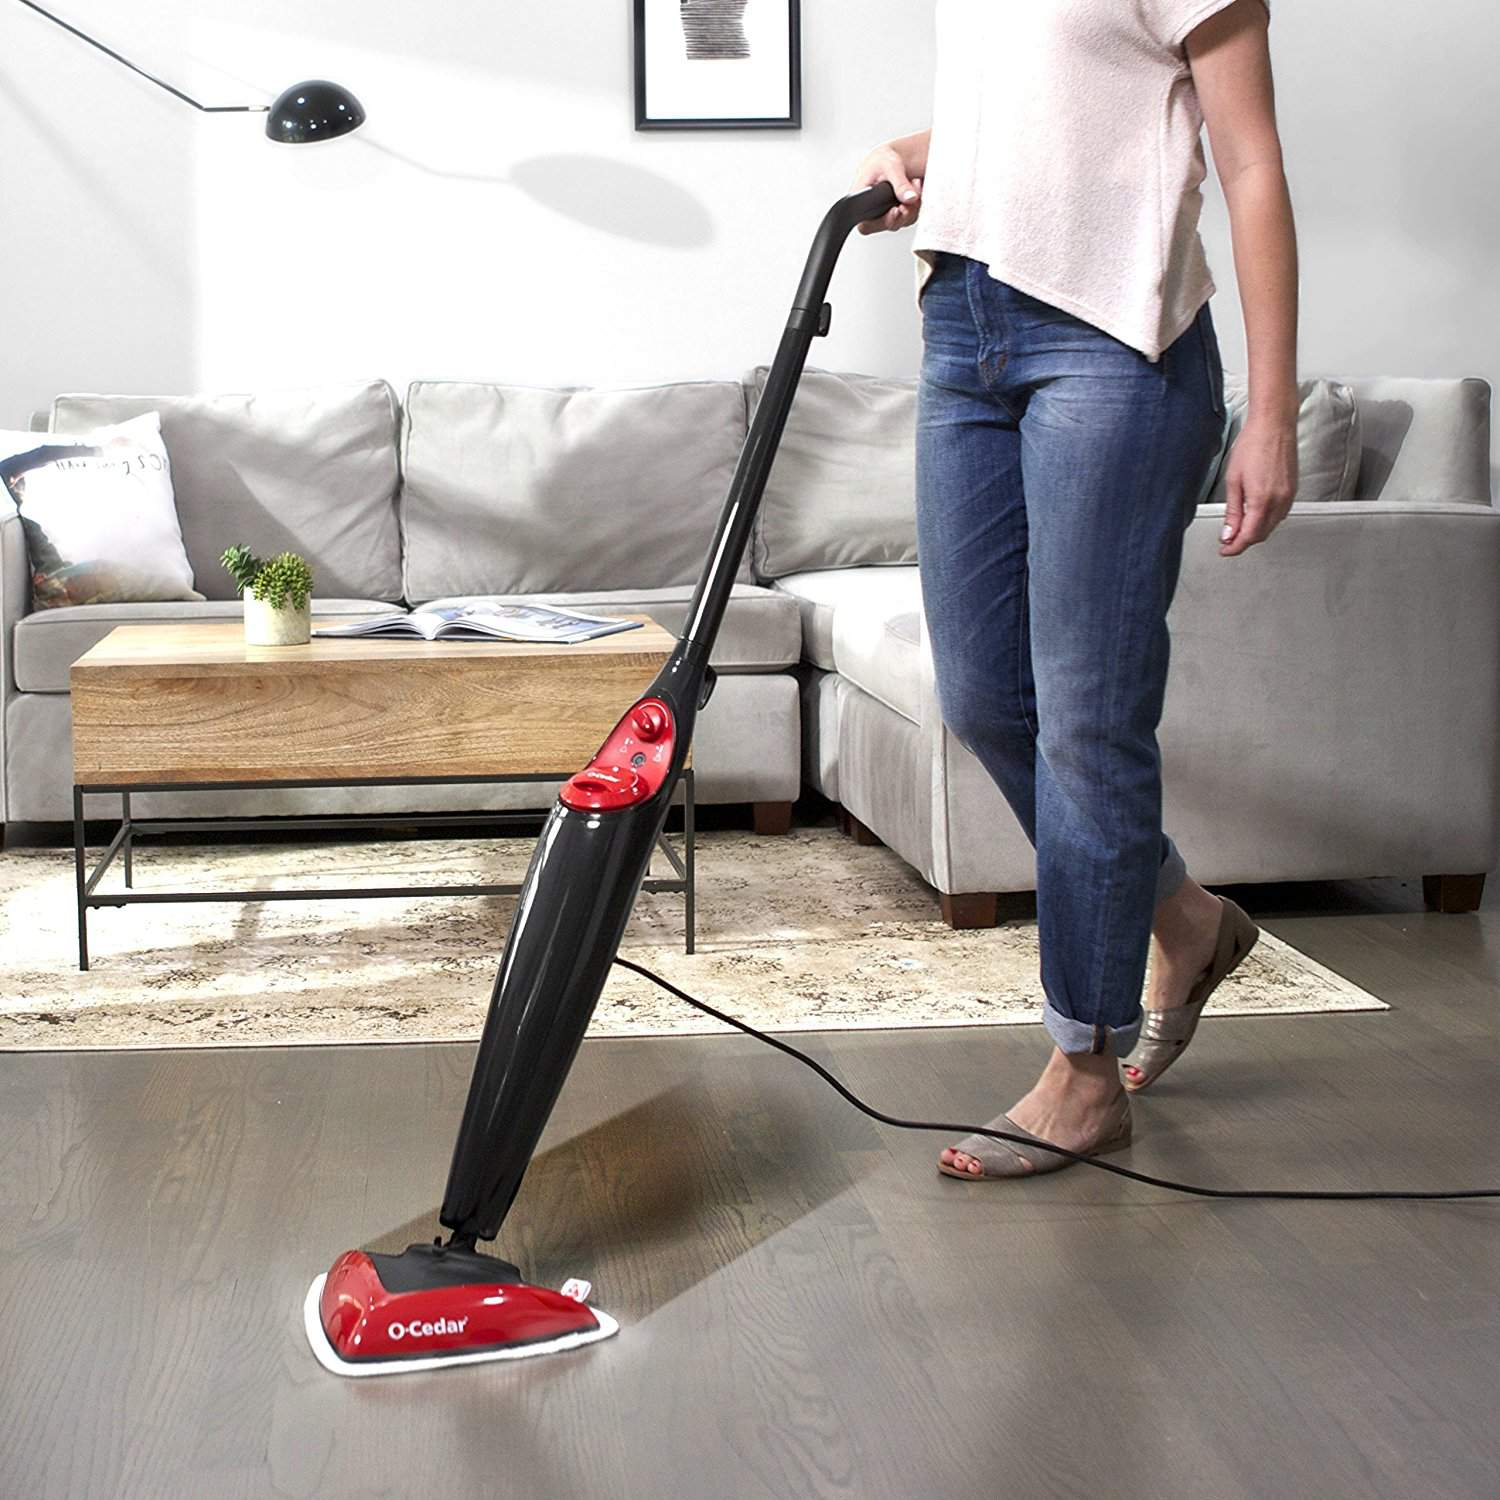 o'cedar steam mop